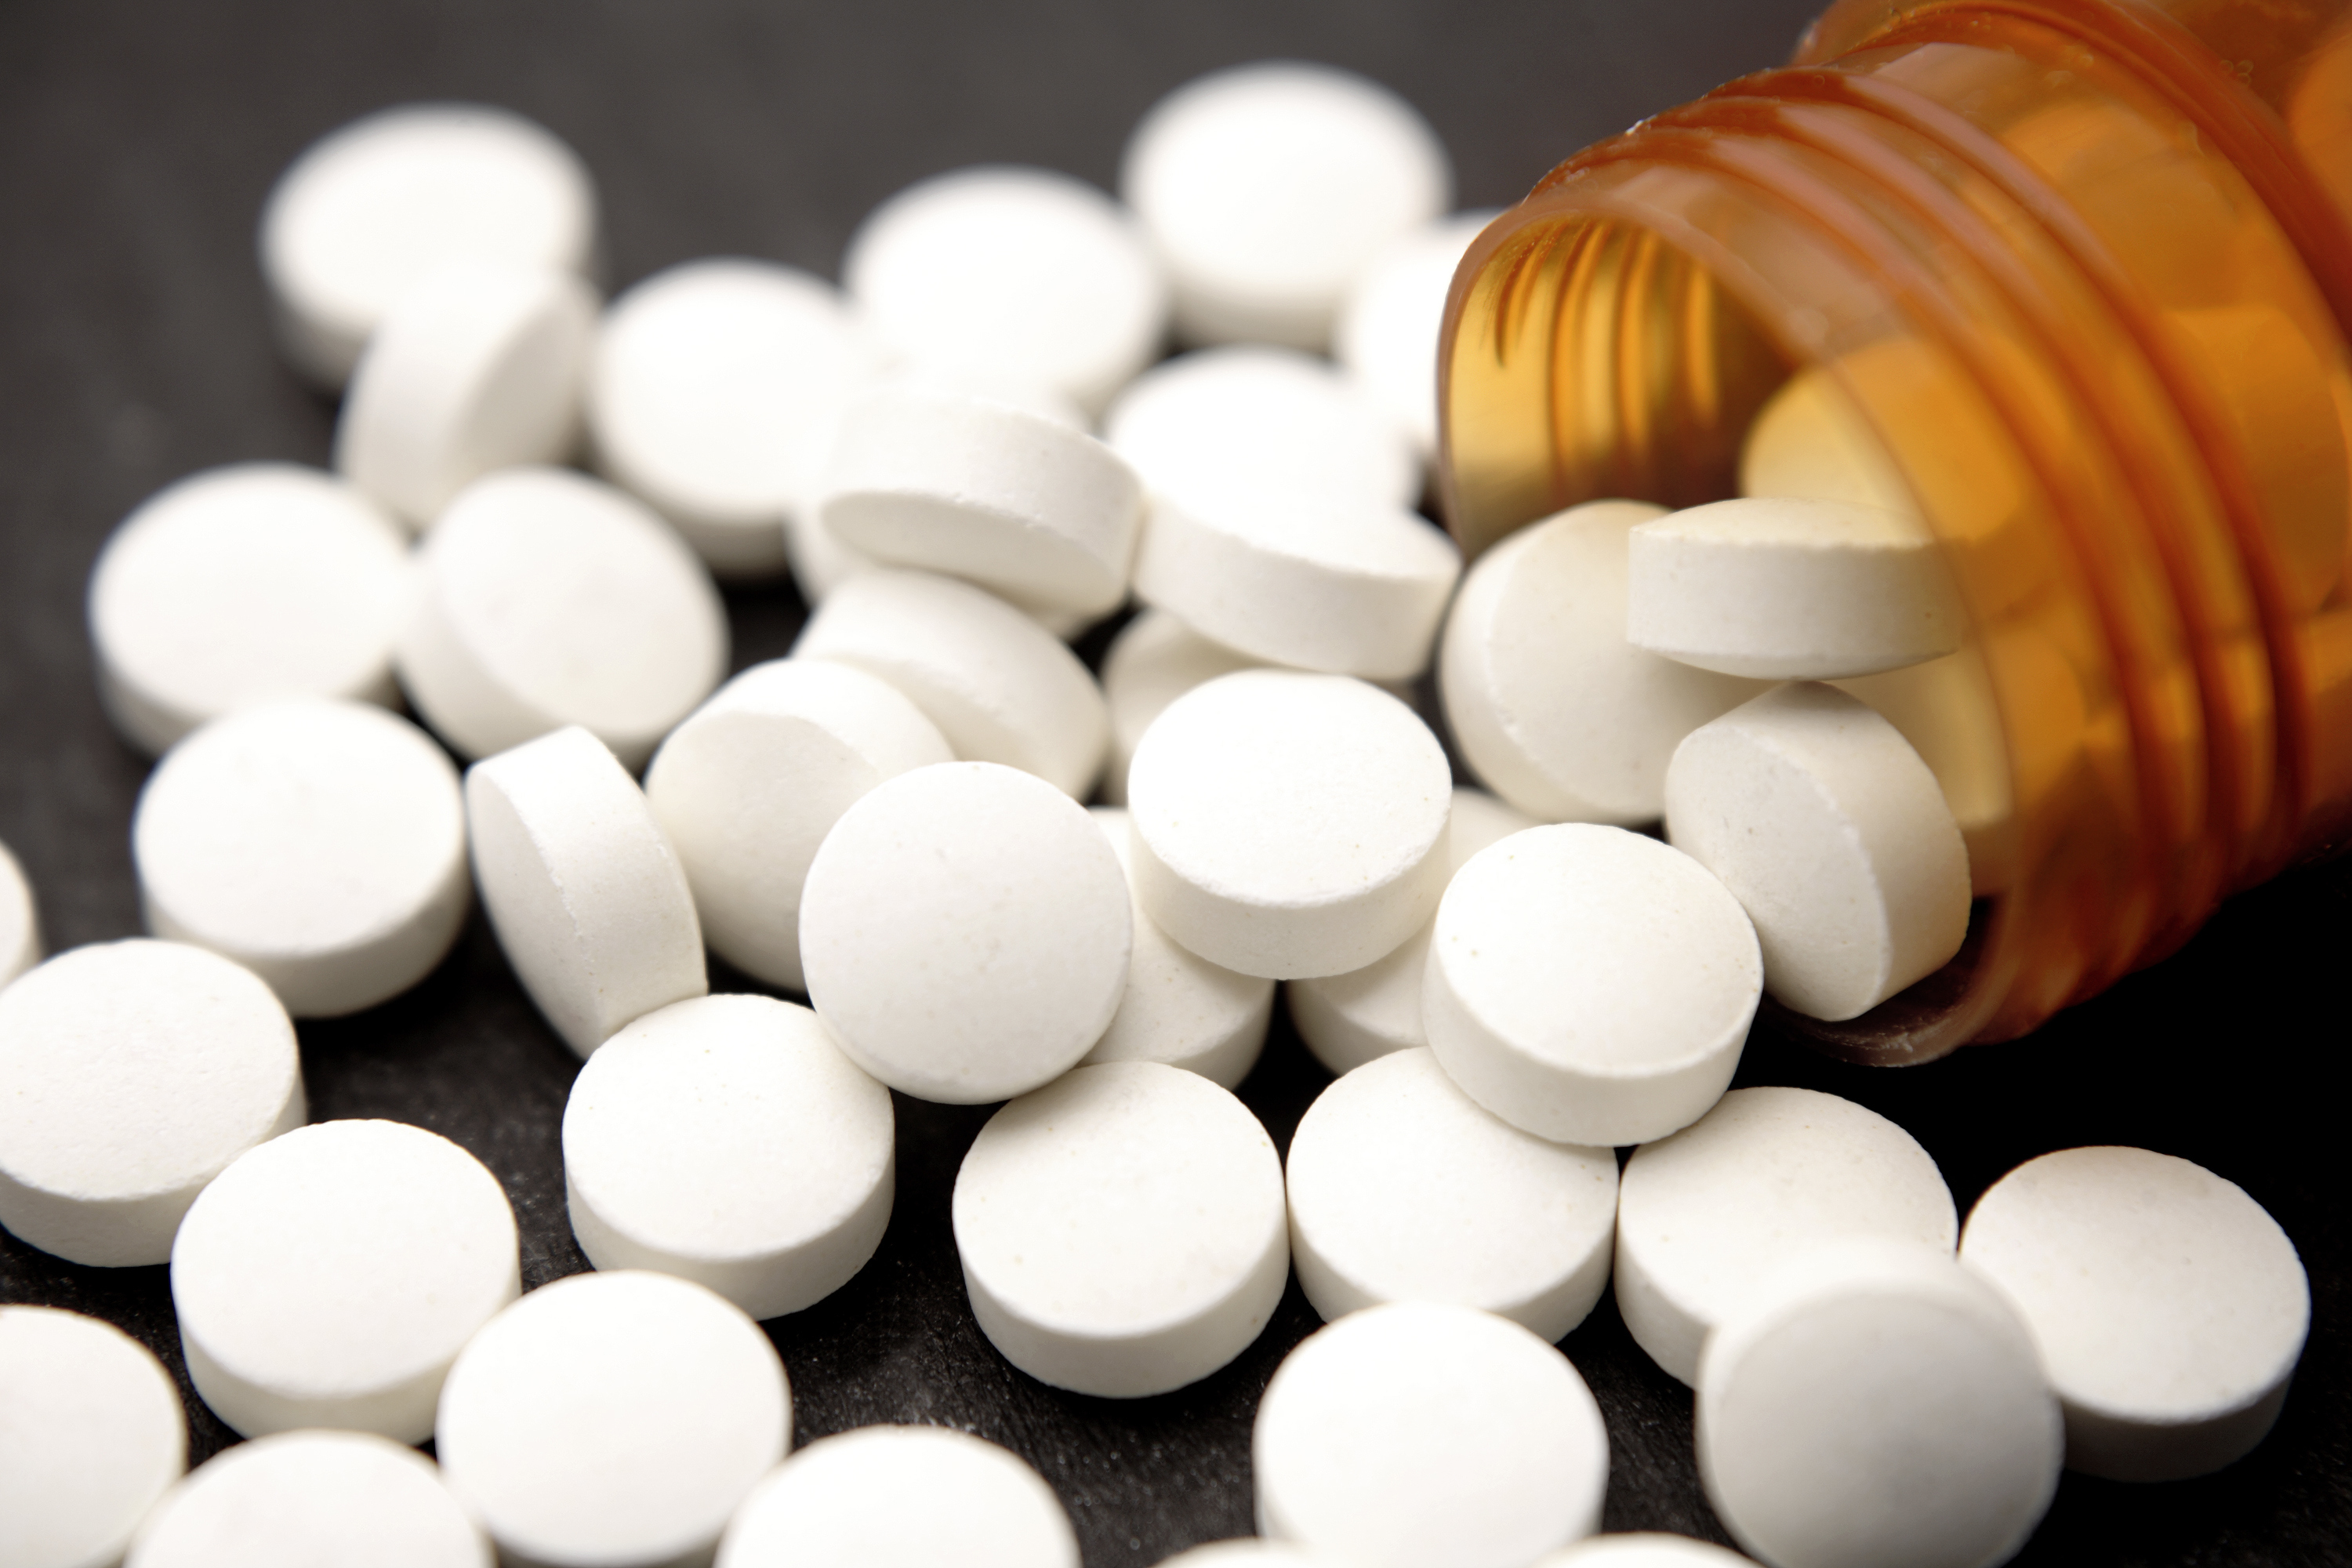 6 Essential Facts About Aspirin Therapy for Your Heart